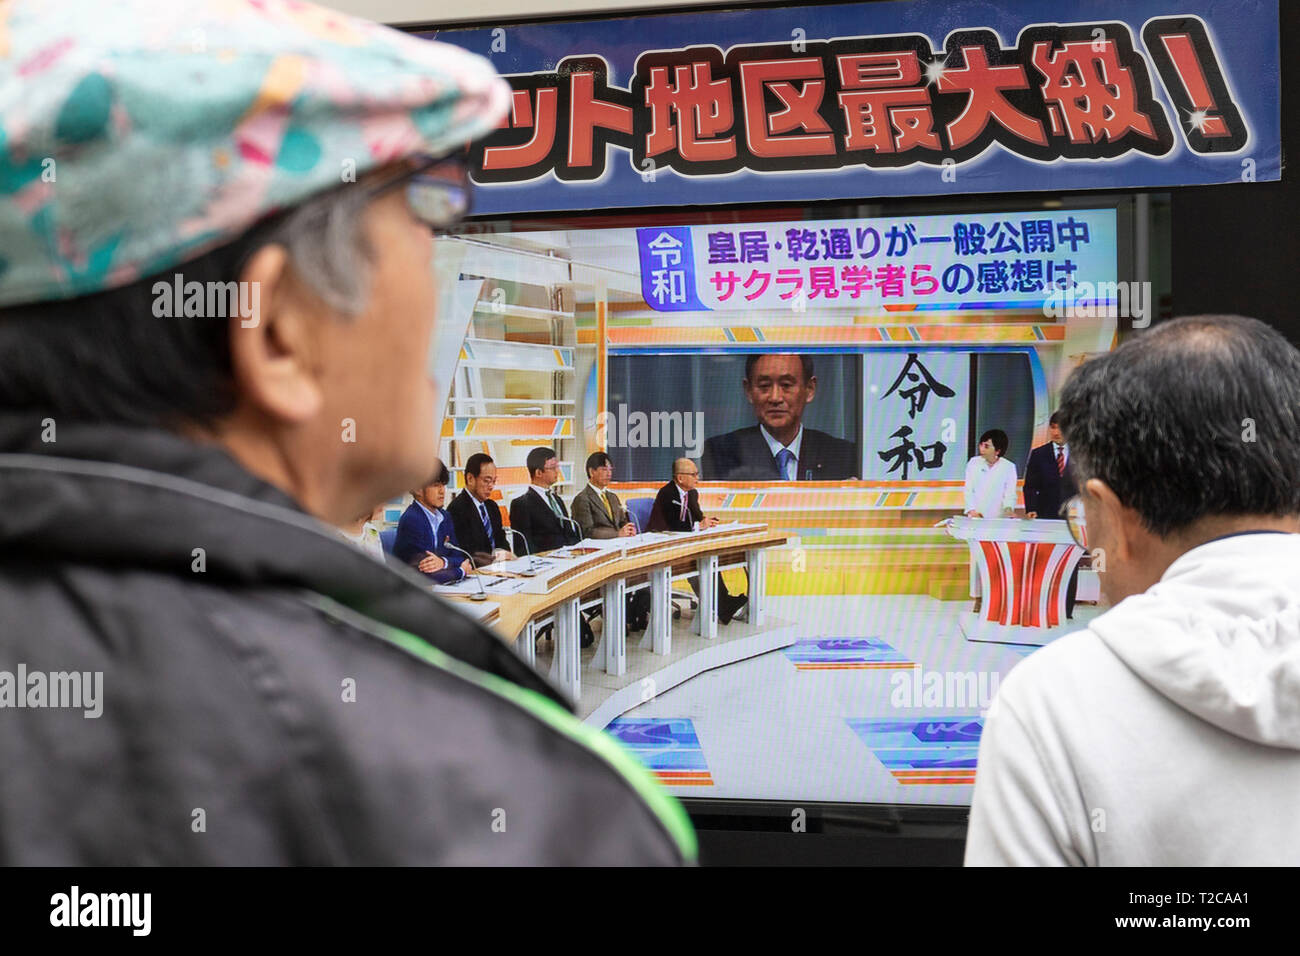 Tokyo, Japan. 1st Apr, 2019. Tokyo, Japan. 01st Apr, 2019. People look at a screen displaying the news of Japanese Chief Cabinet Secretary Yoshihide Suga showing the kanji ''Reiwa'' for the Imperial new era, in downtown Tokyo. The government announced ''Reiwa'' as new Imperial era name today, April 1st. The new era will start on May 1st when the Crown Prince Naruhito ascends the throne, after his father, Emperor Akihito, formally abdicates on April 30. Credit: Rodrigo Reyes Marin/AFLO/Alamy Live News - Stock Image